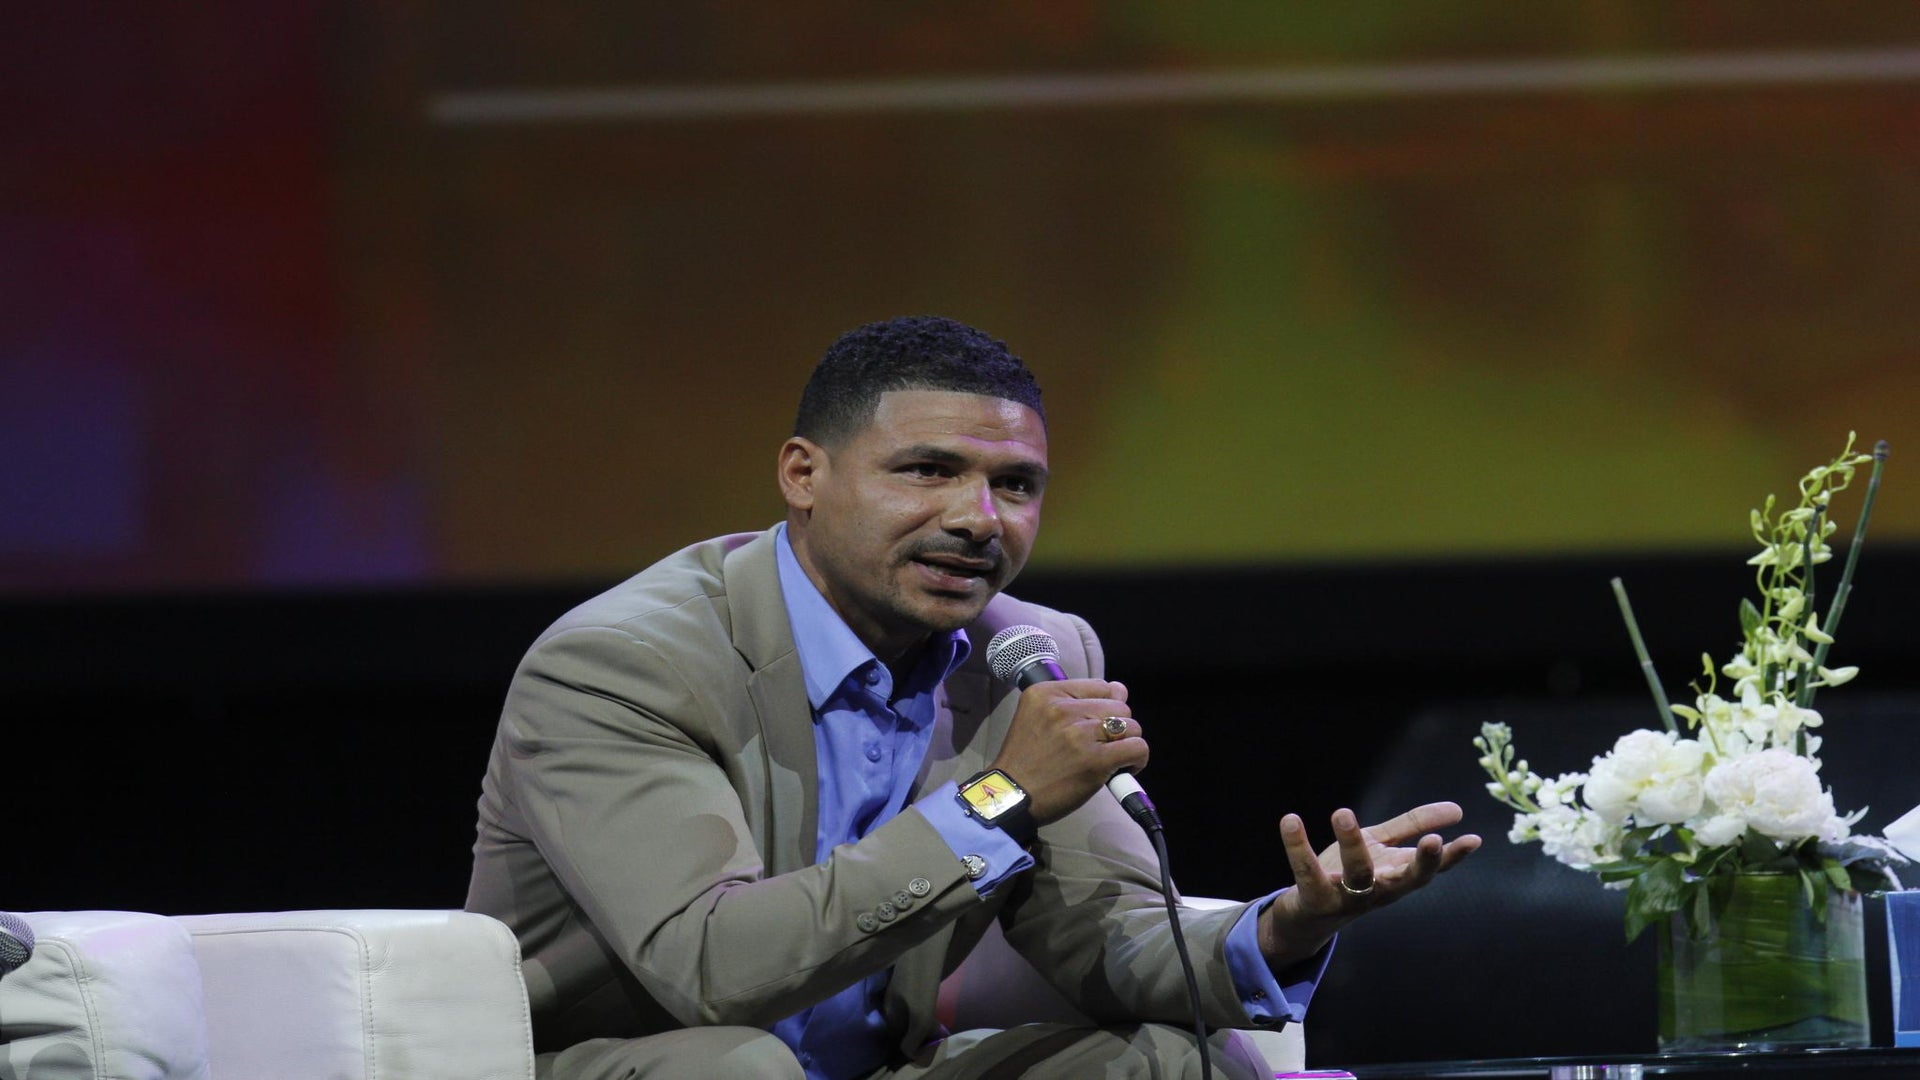 ESSENCE Festival Talent on the Value of Family